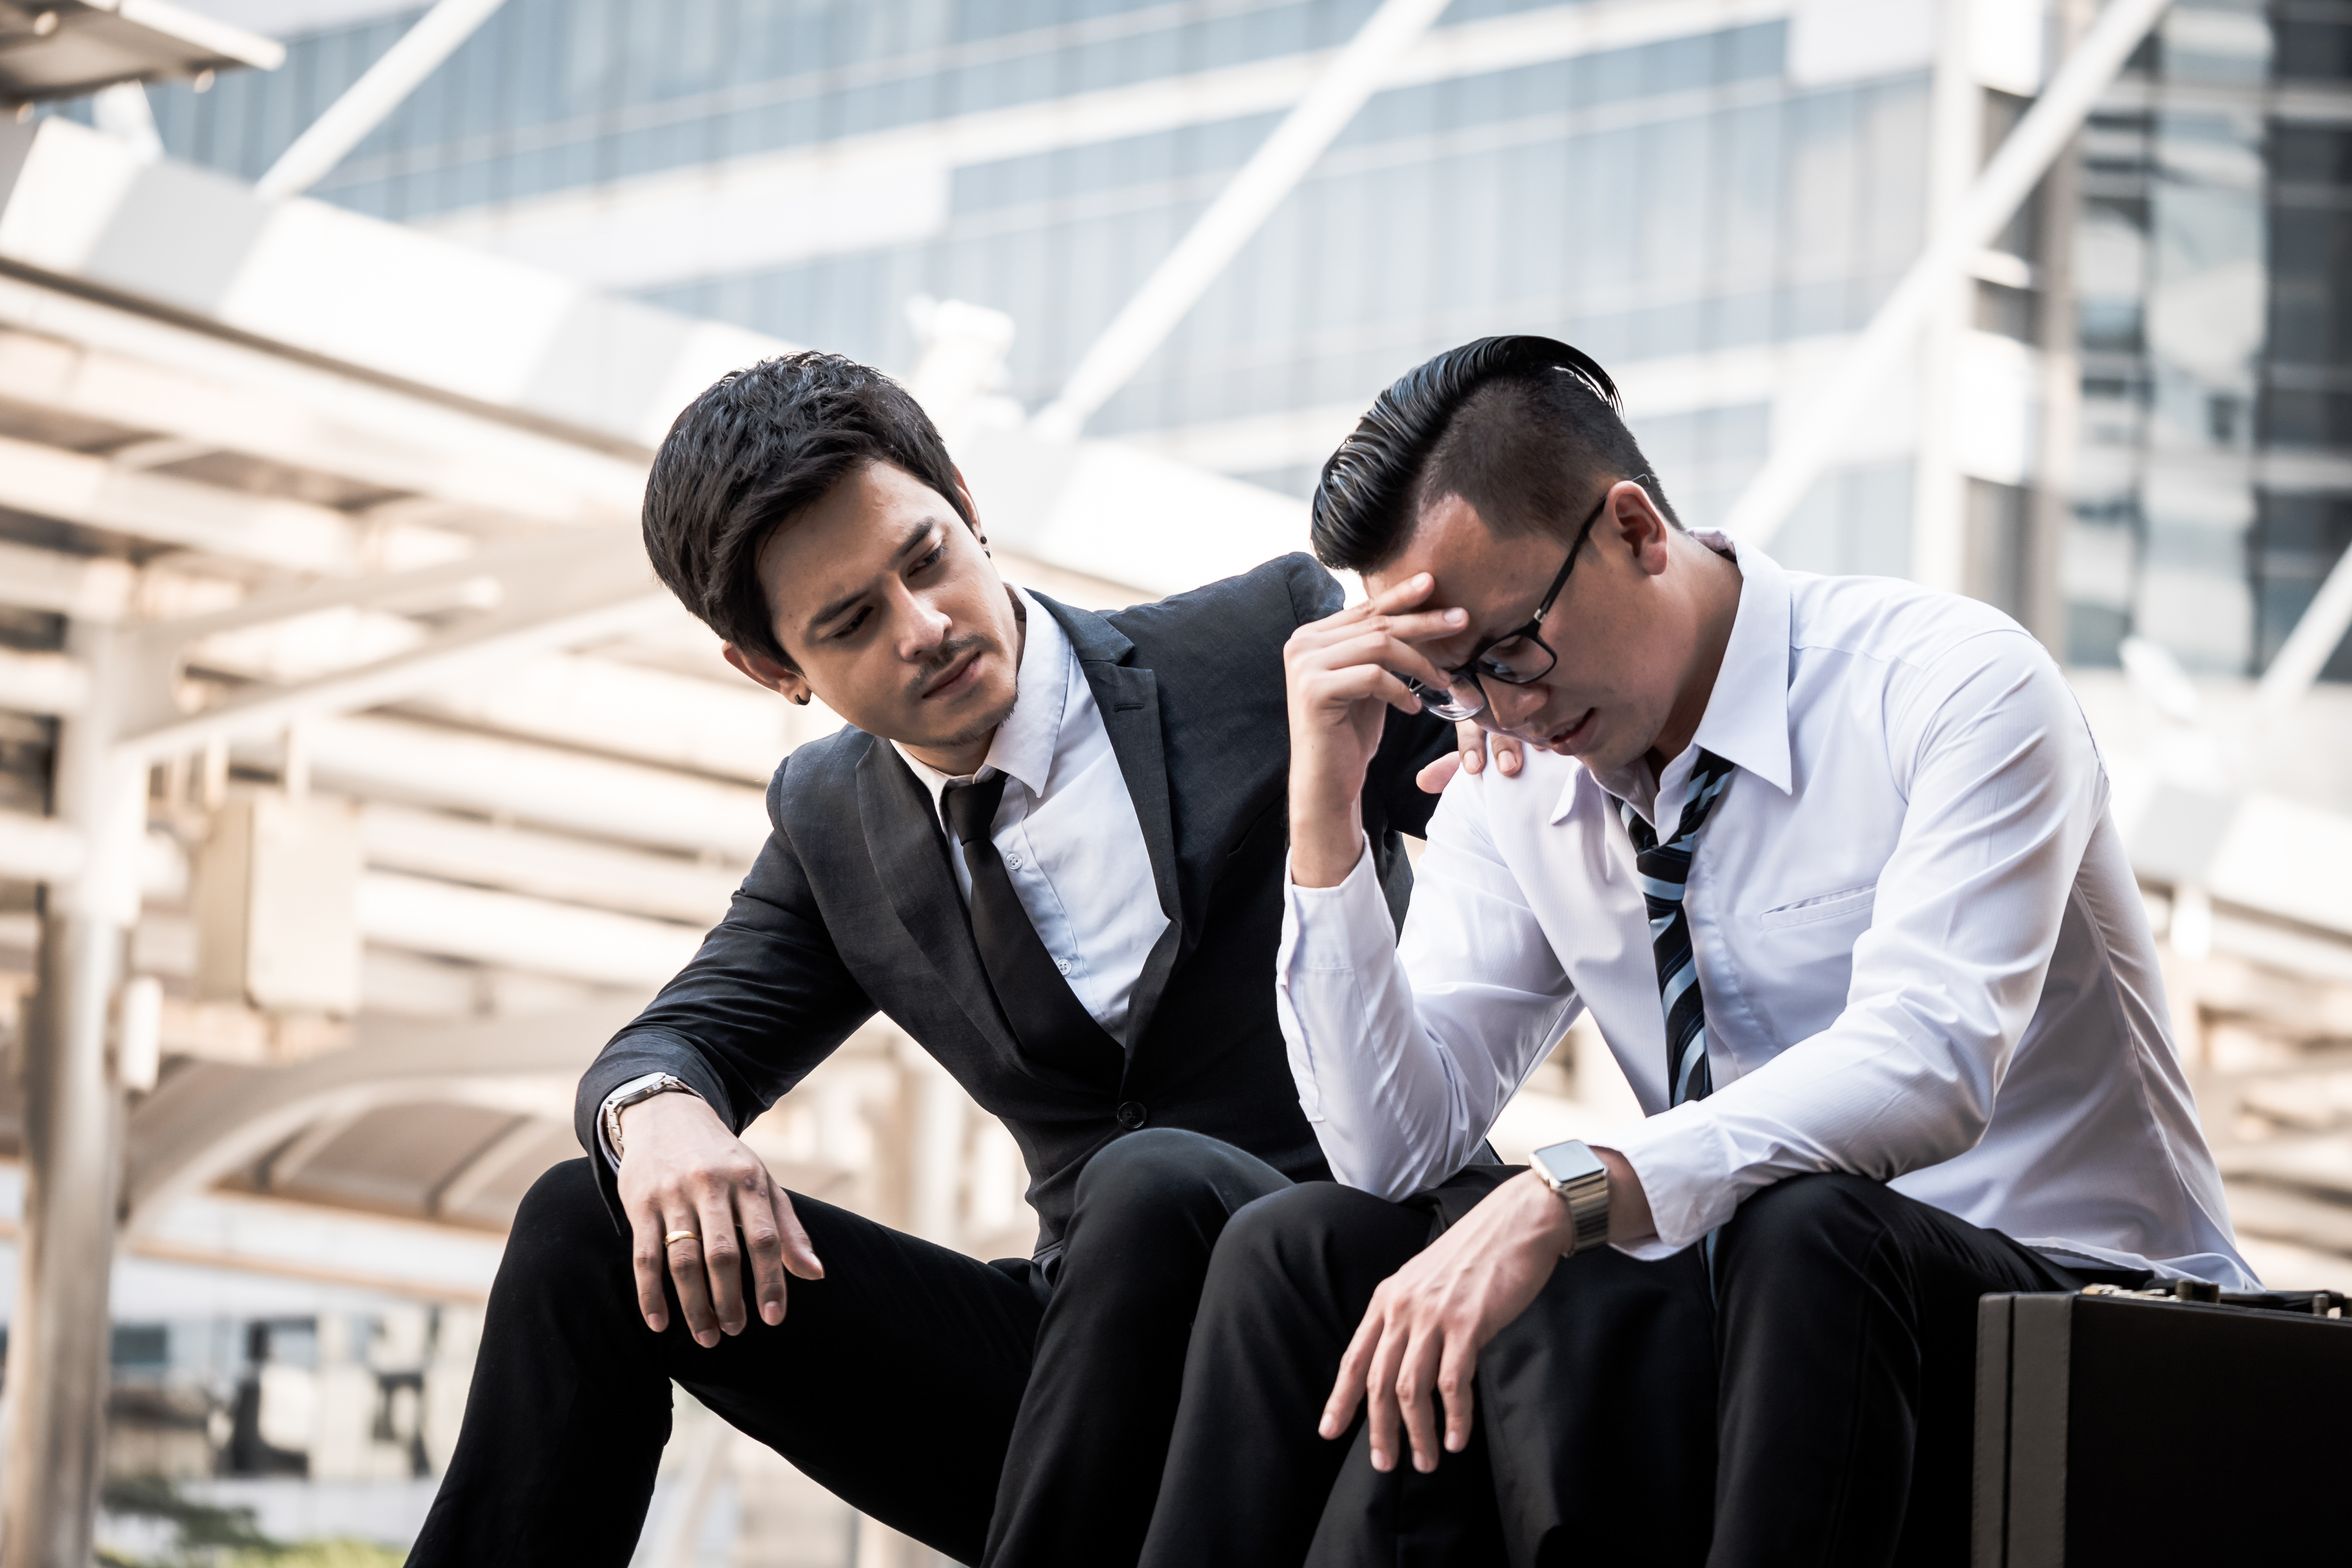 Bankruptcy – when it's the right move, and how to handle it